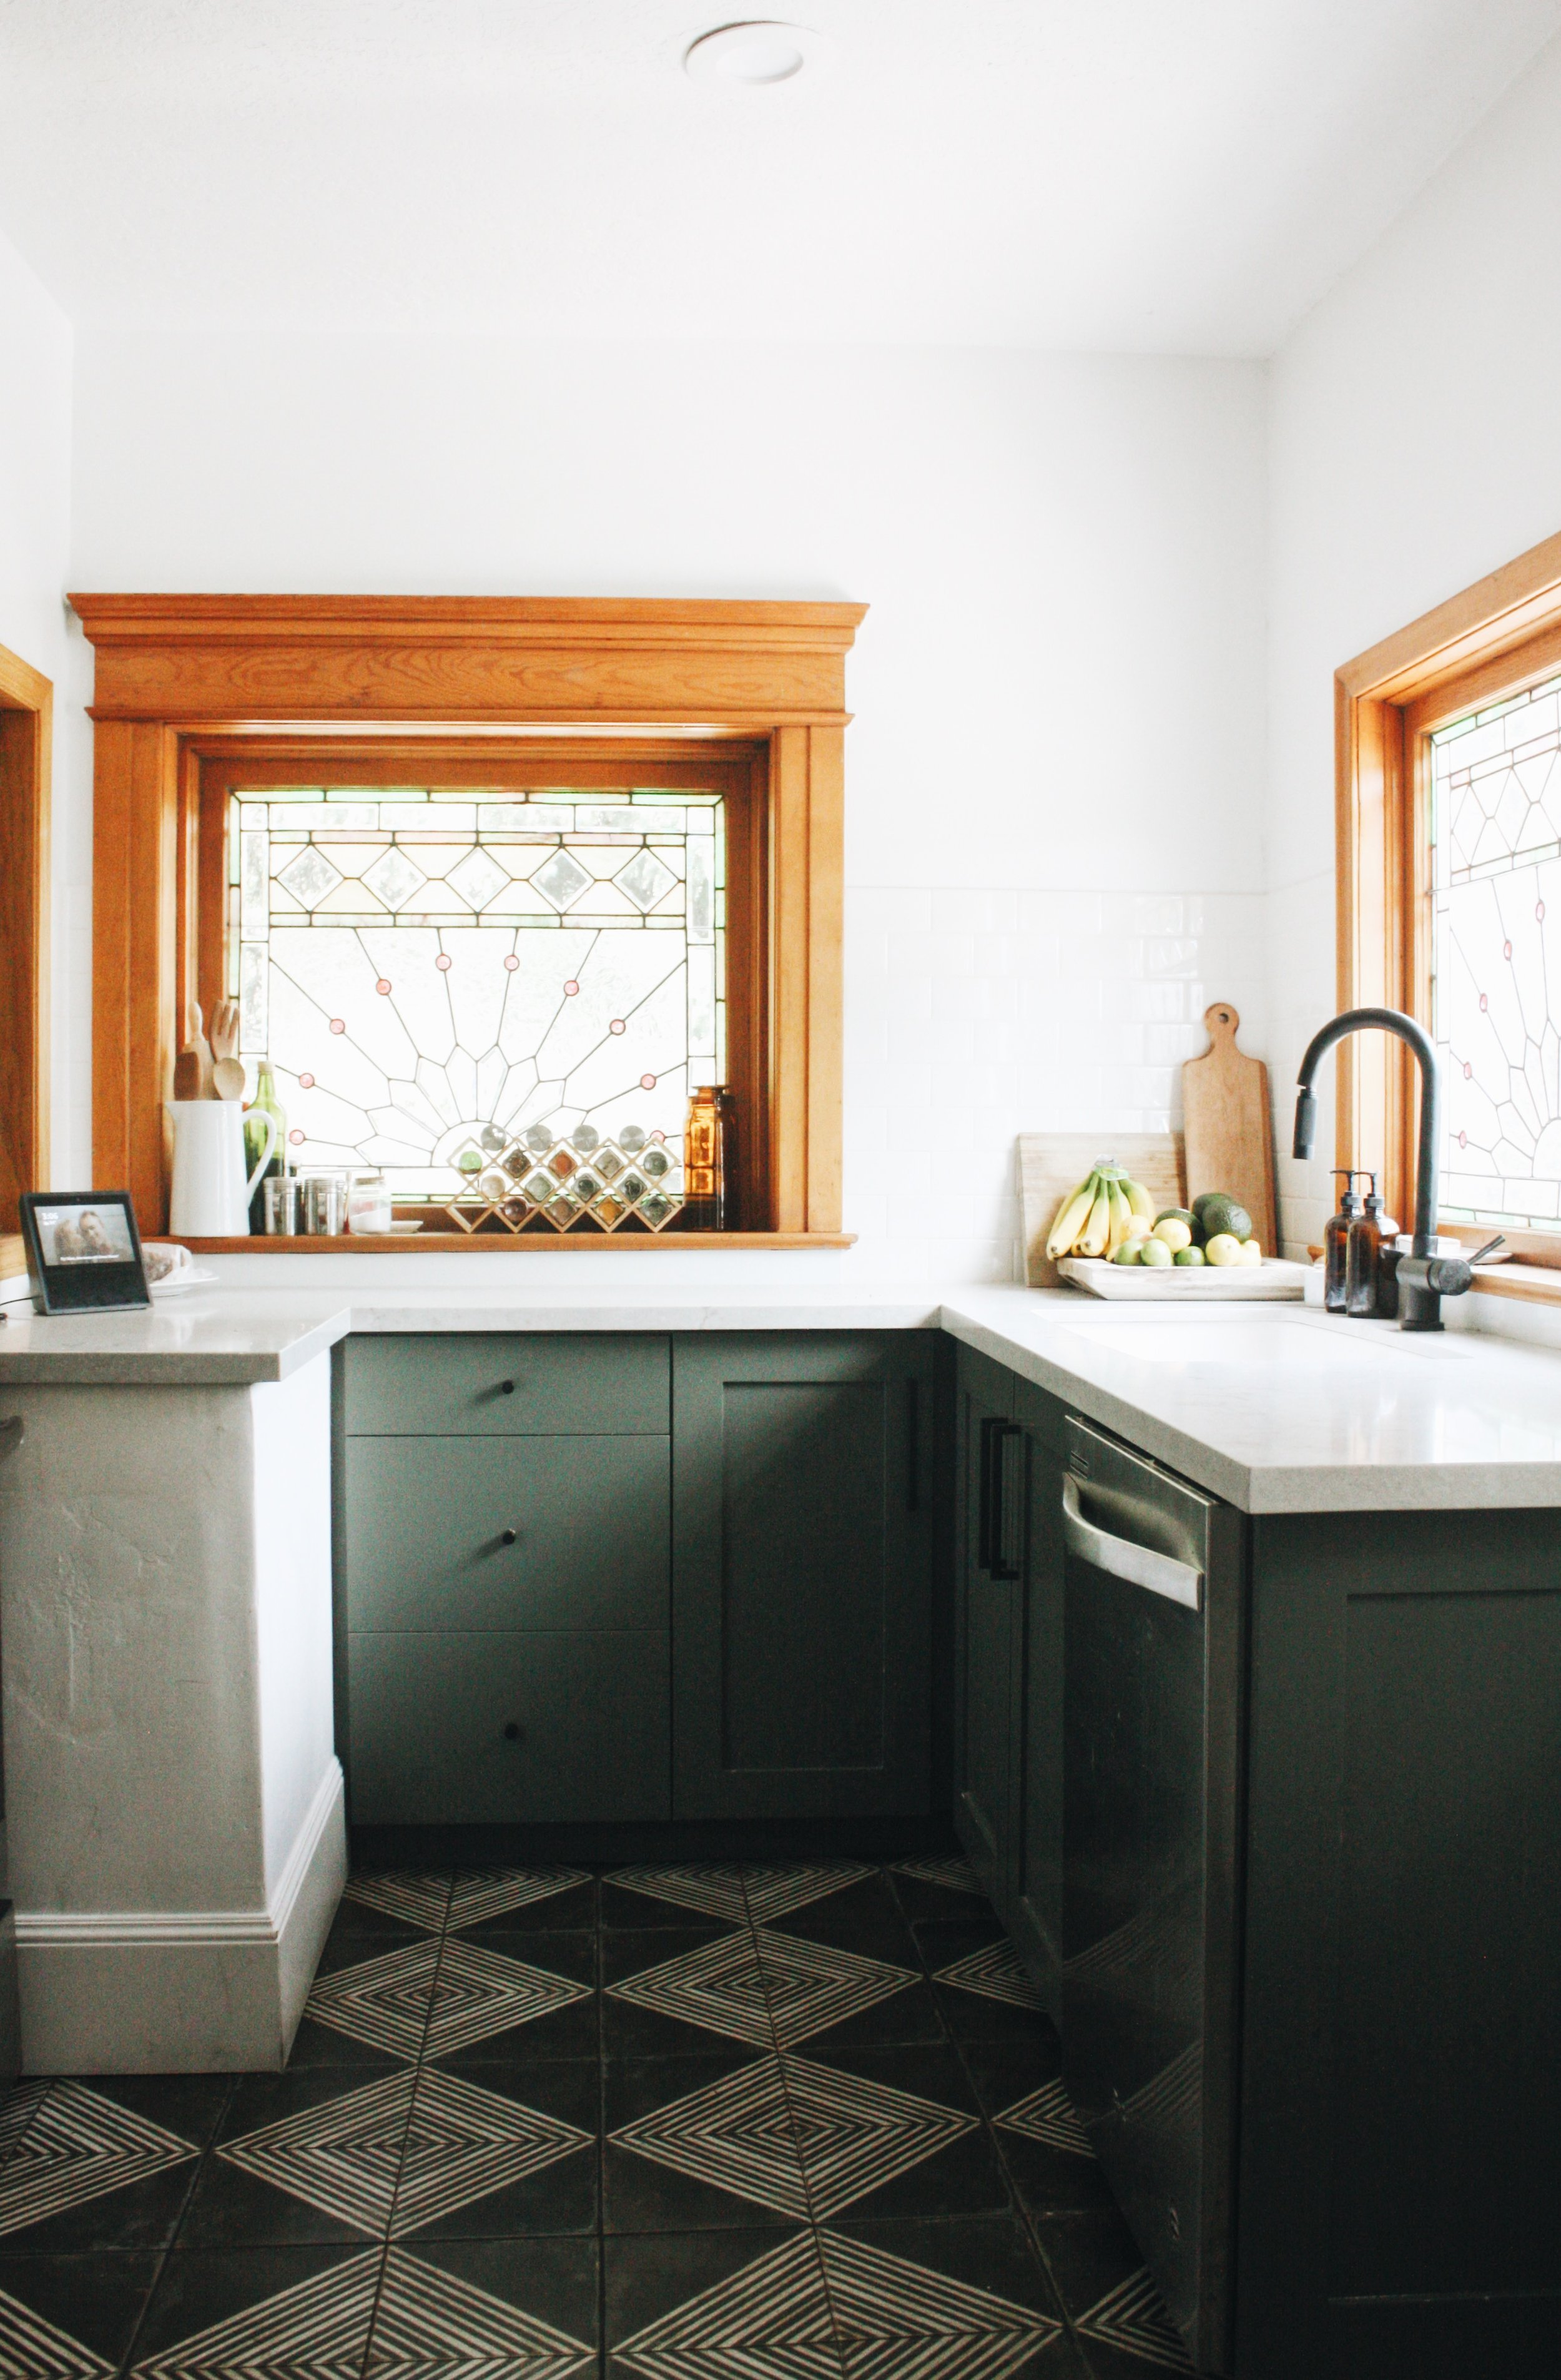 Paint color on cabinets is Basil from Sherwin-Williams